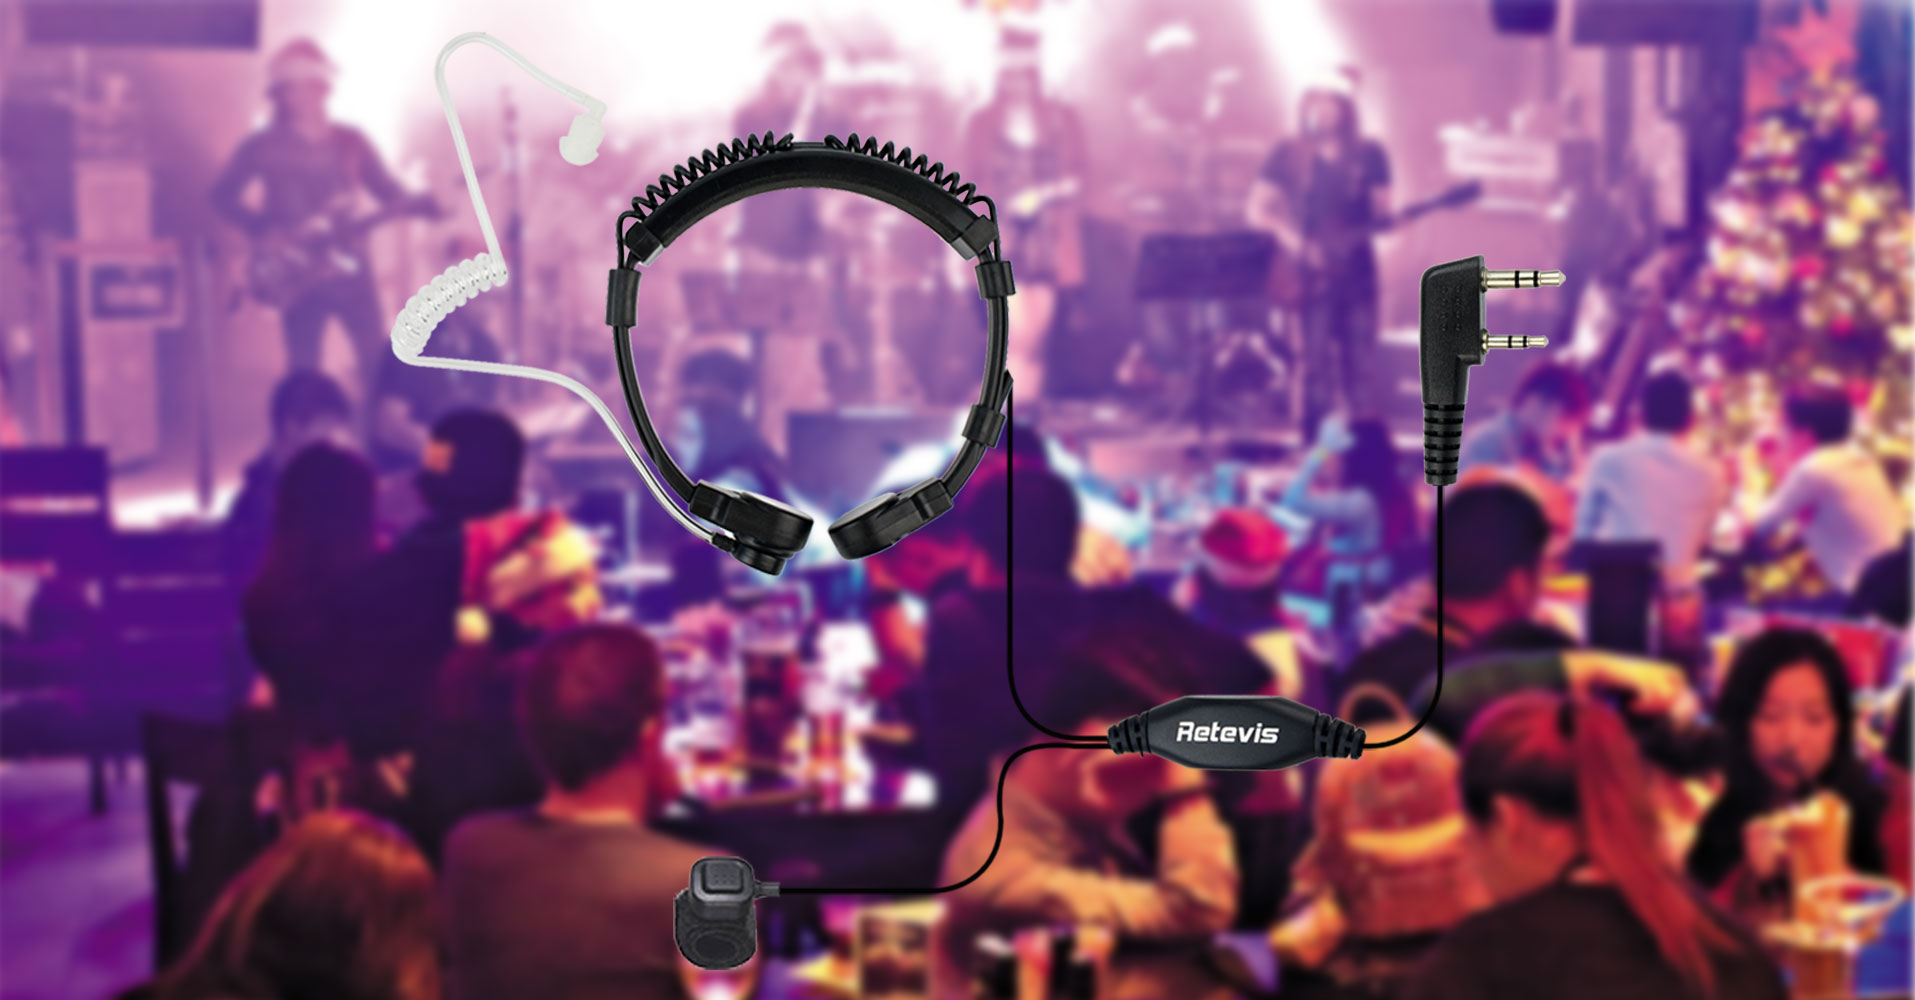 Throat Microphone for noisy clubs